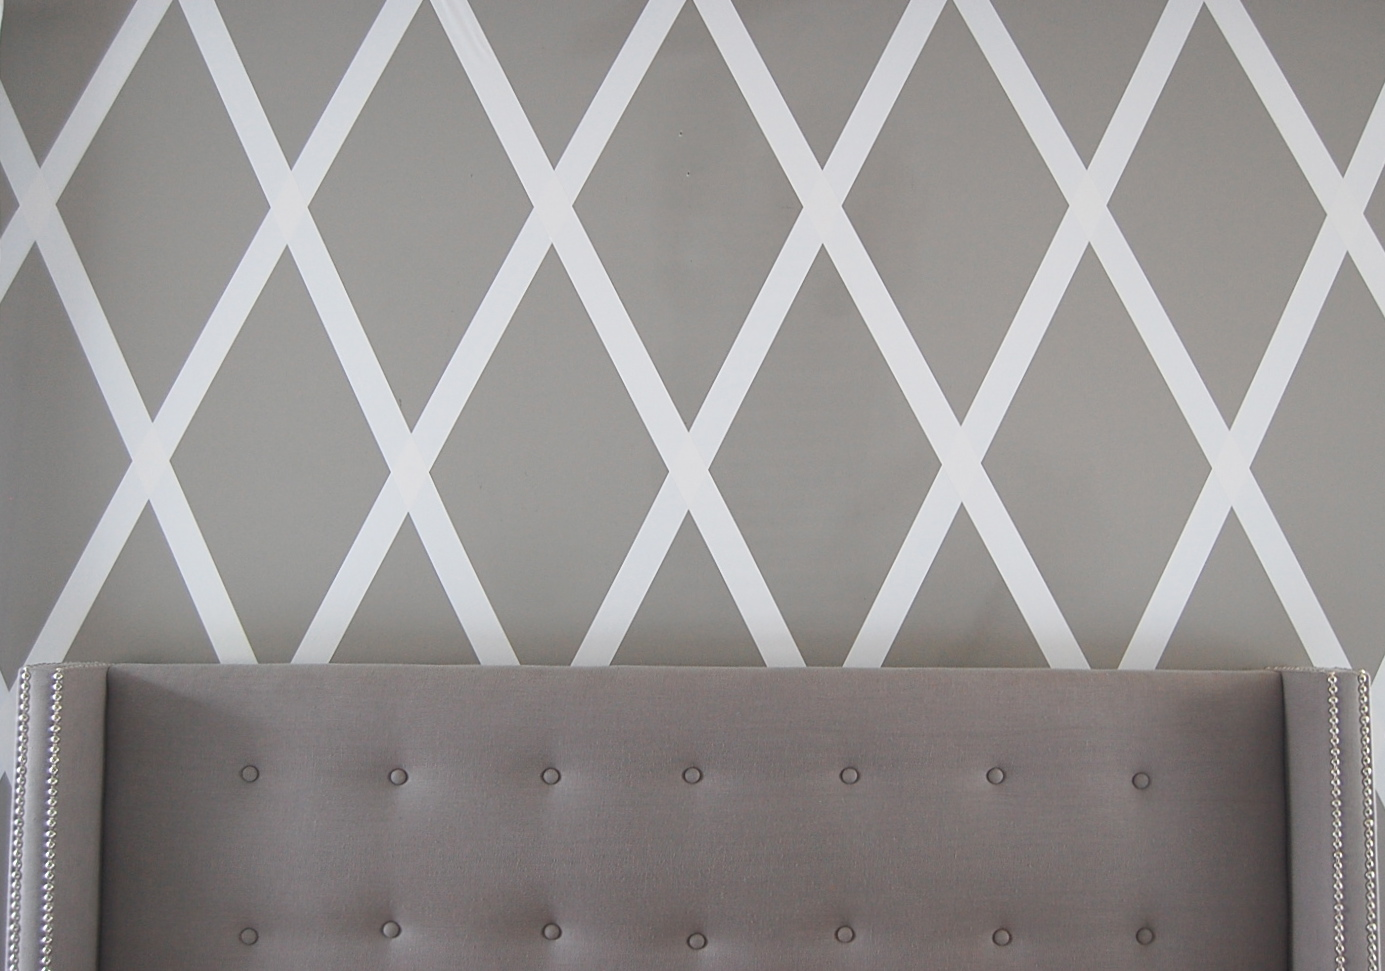 Duct tape wall treatment Painting geometric patterns on walls